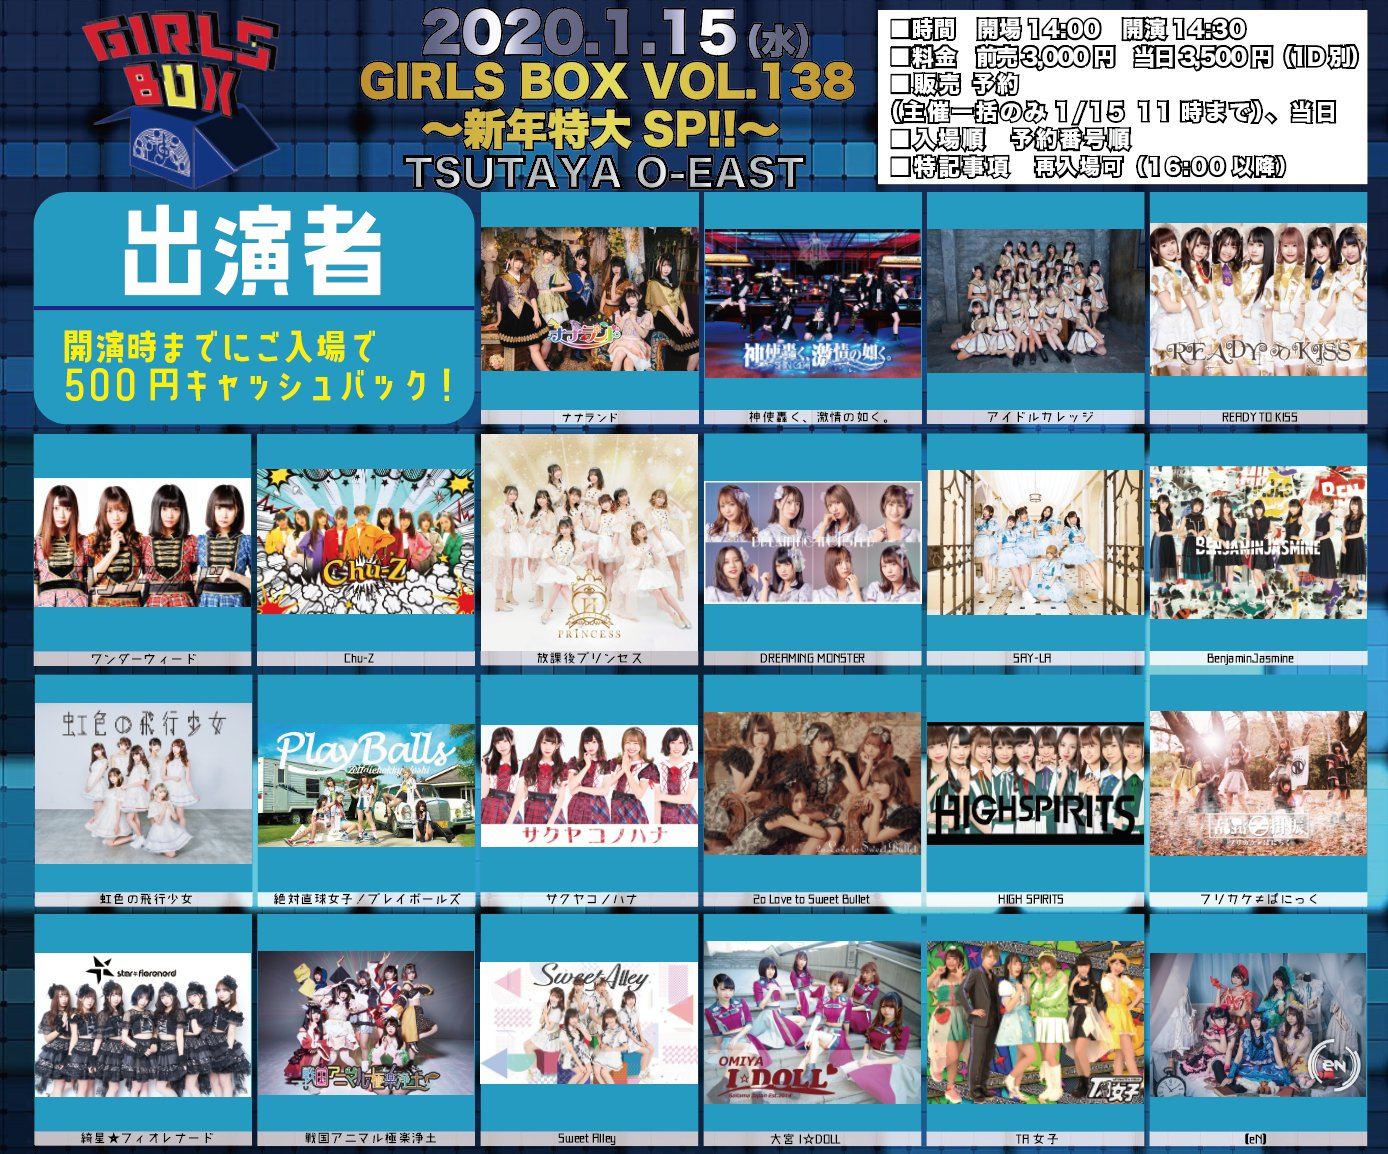 【重要LIVE】『GIRLS BOX VOL.138〜新年特大SP!!〜』大宮I☆DOLL出演